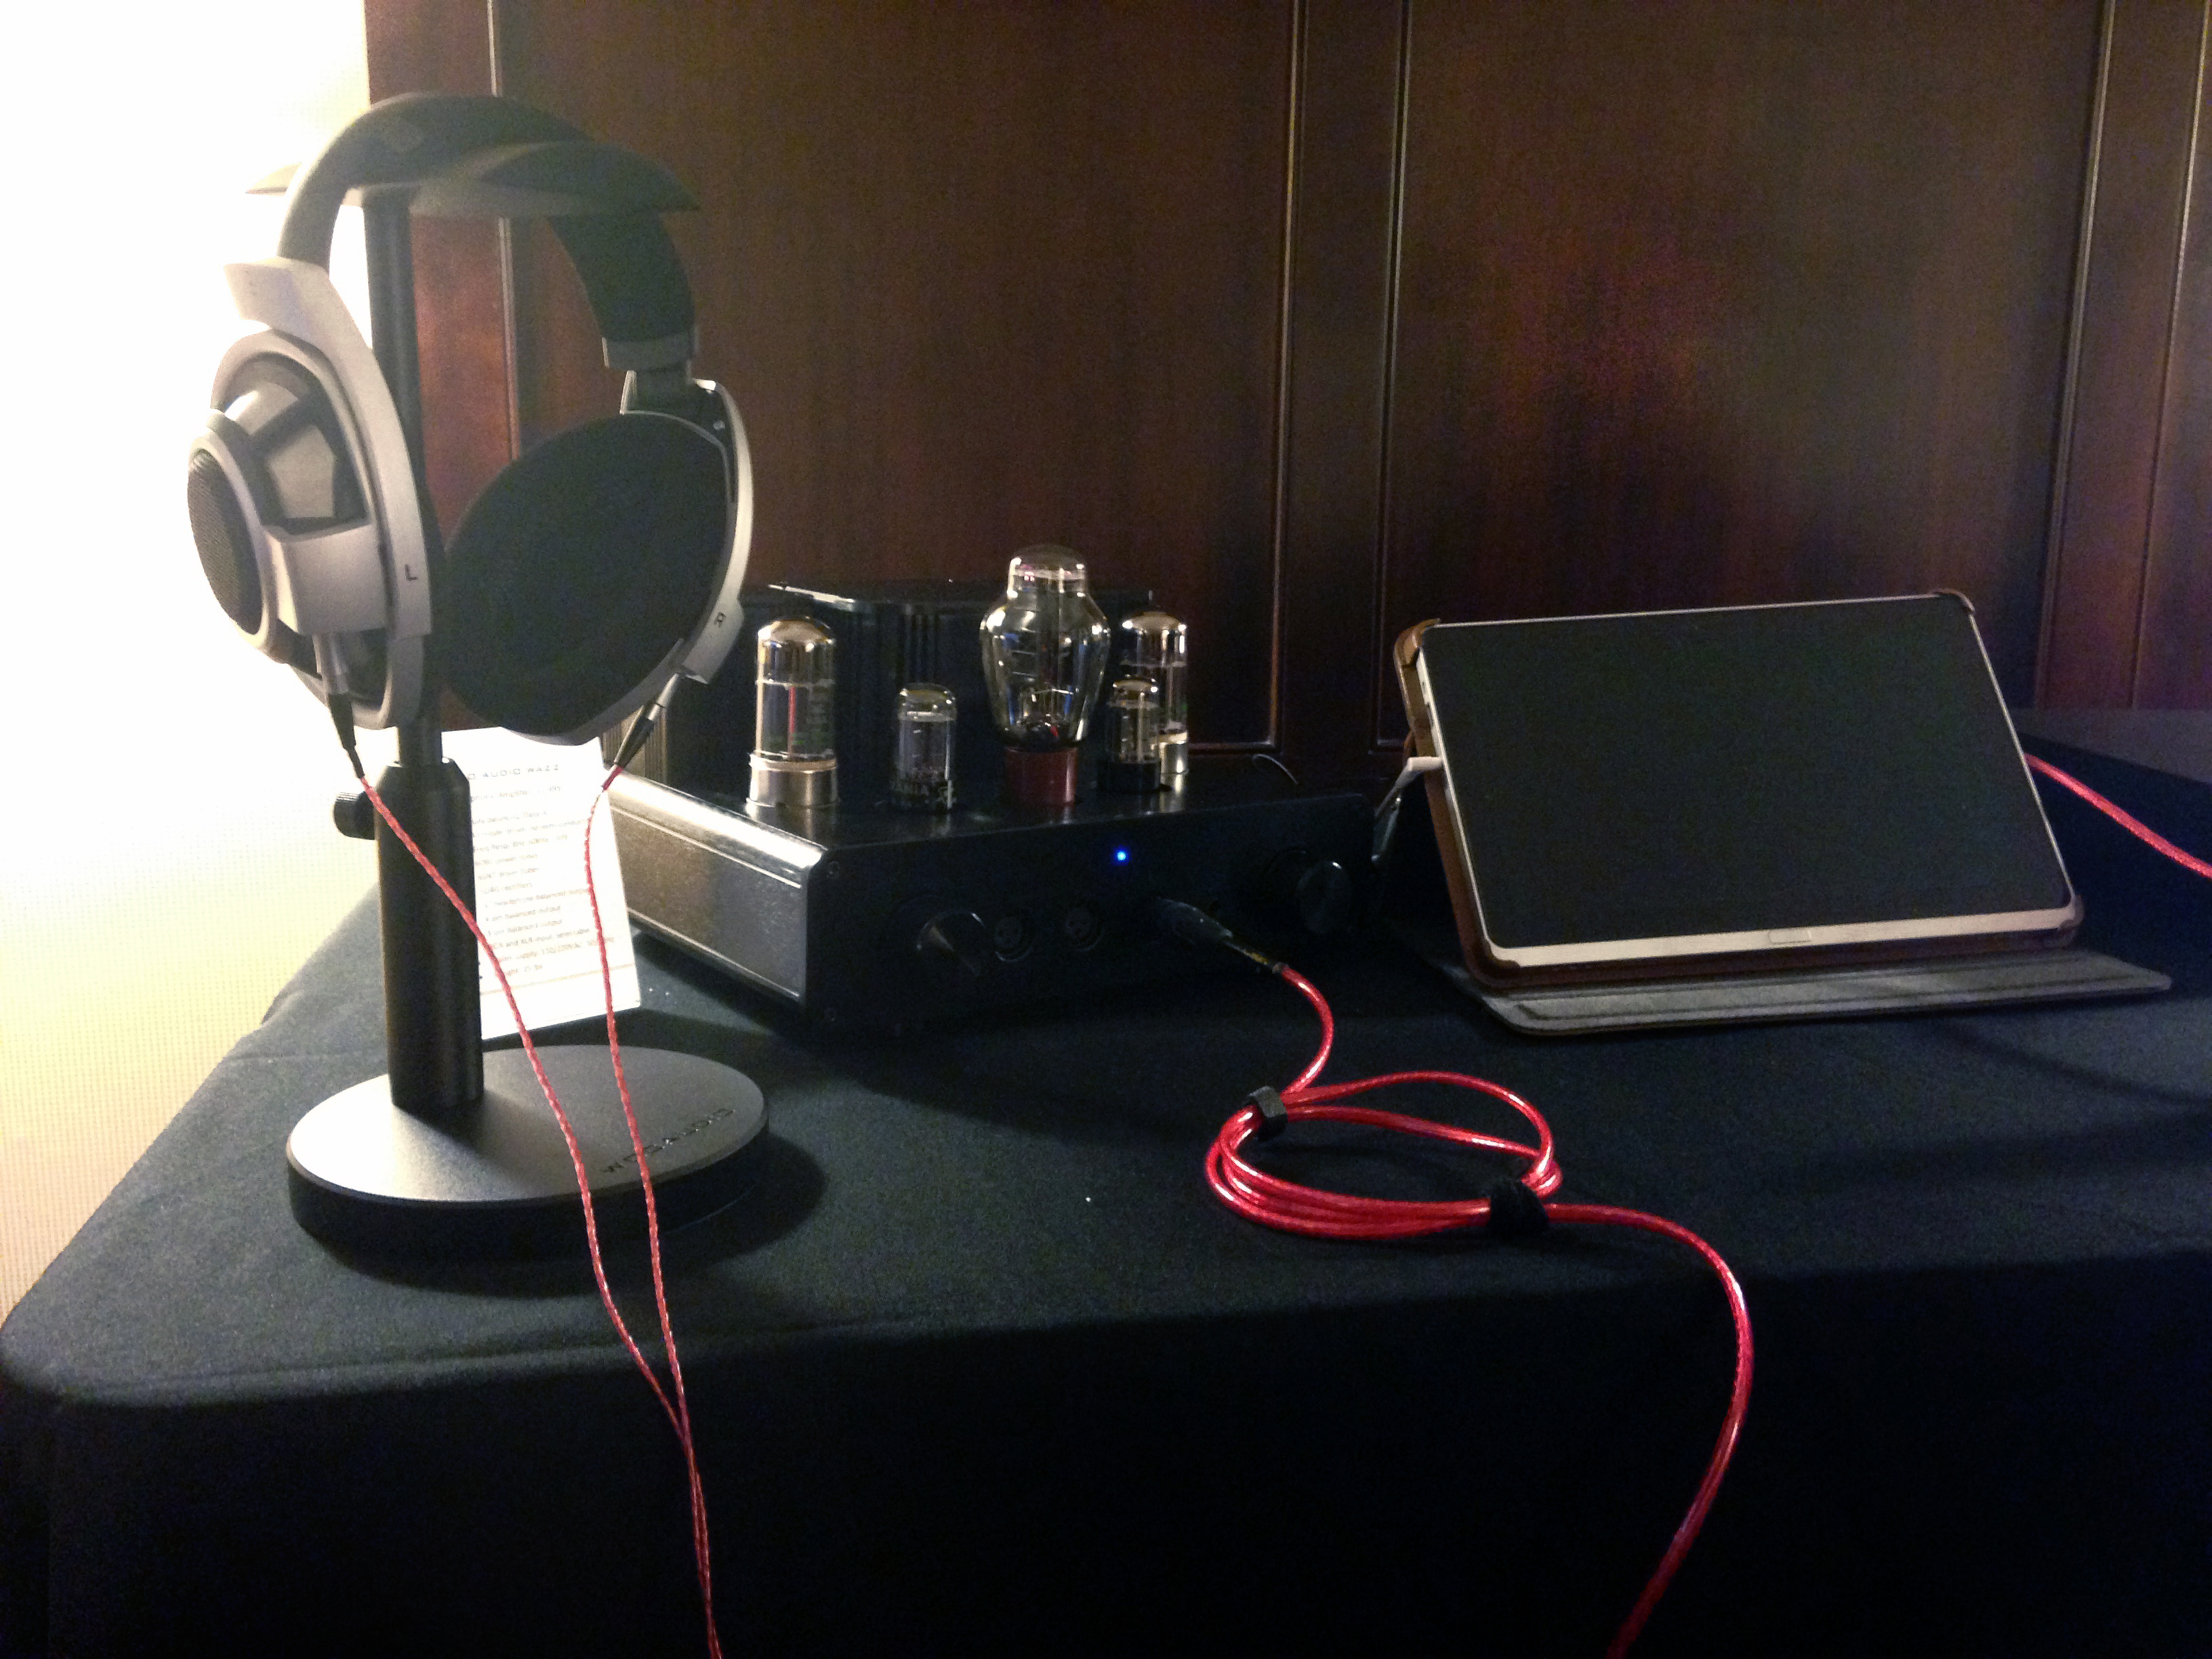 Woo Audio's rig used our new Heimdall 2 Headphone Cable and USB!